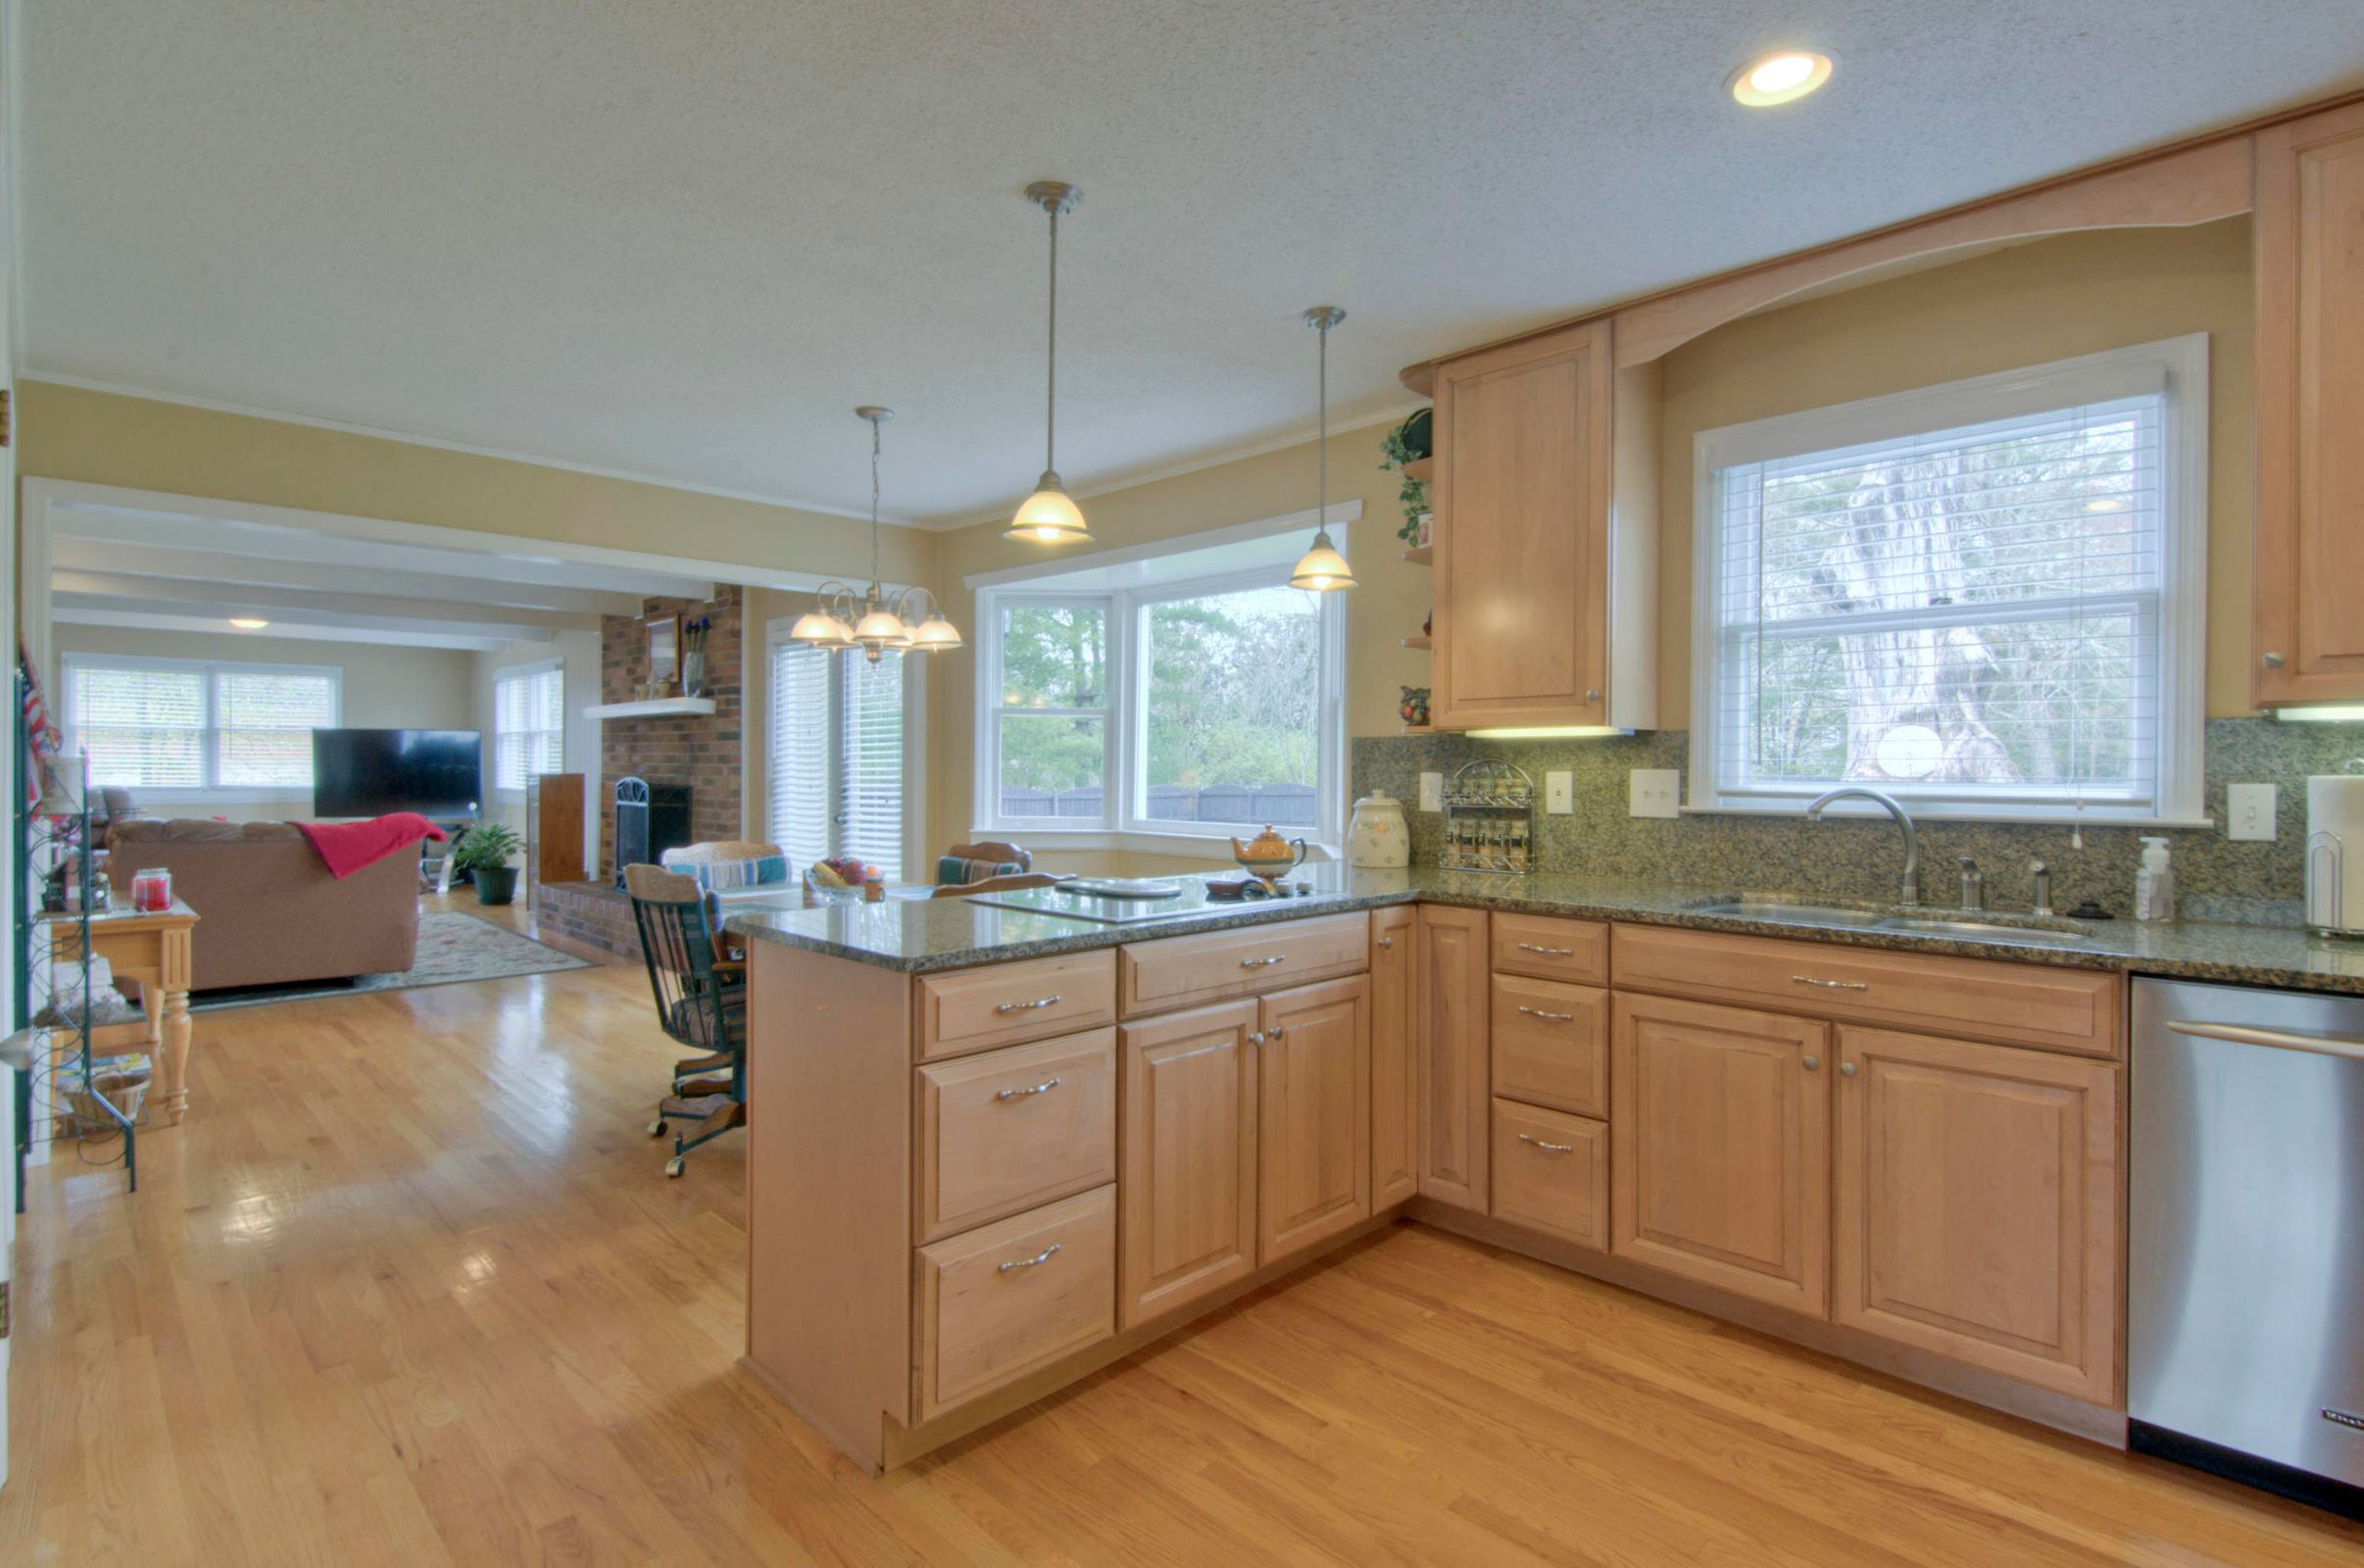 GRANITE TOPS & STAINLESS APPLIANCES